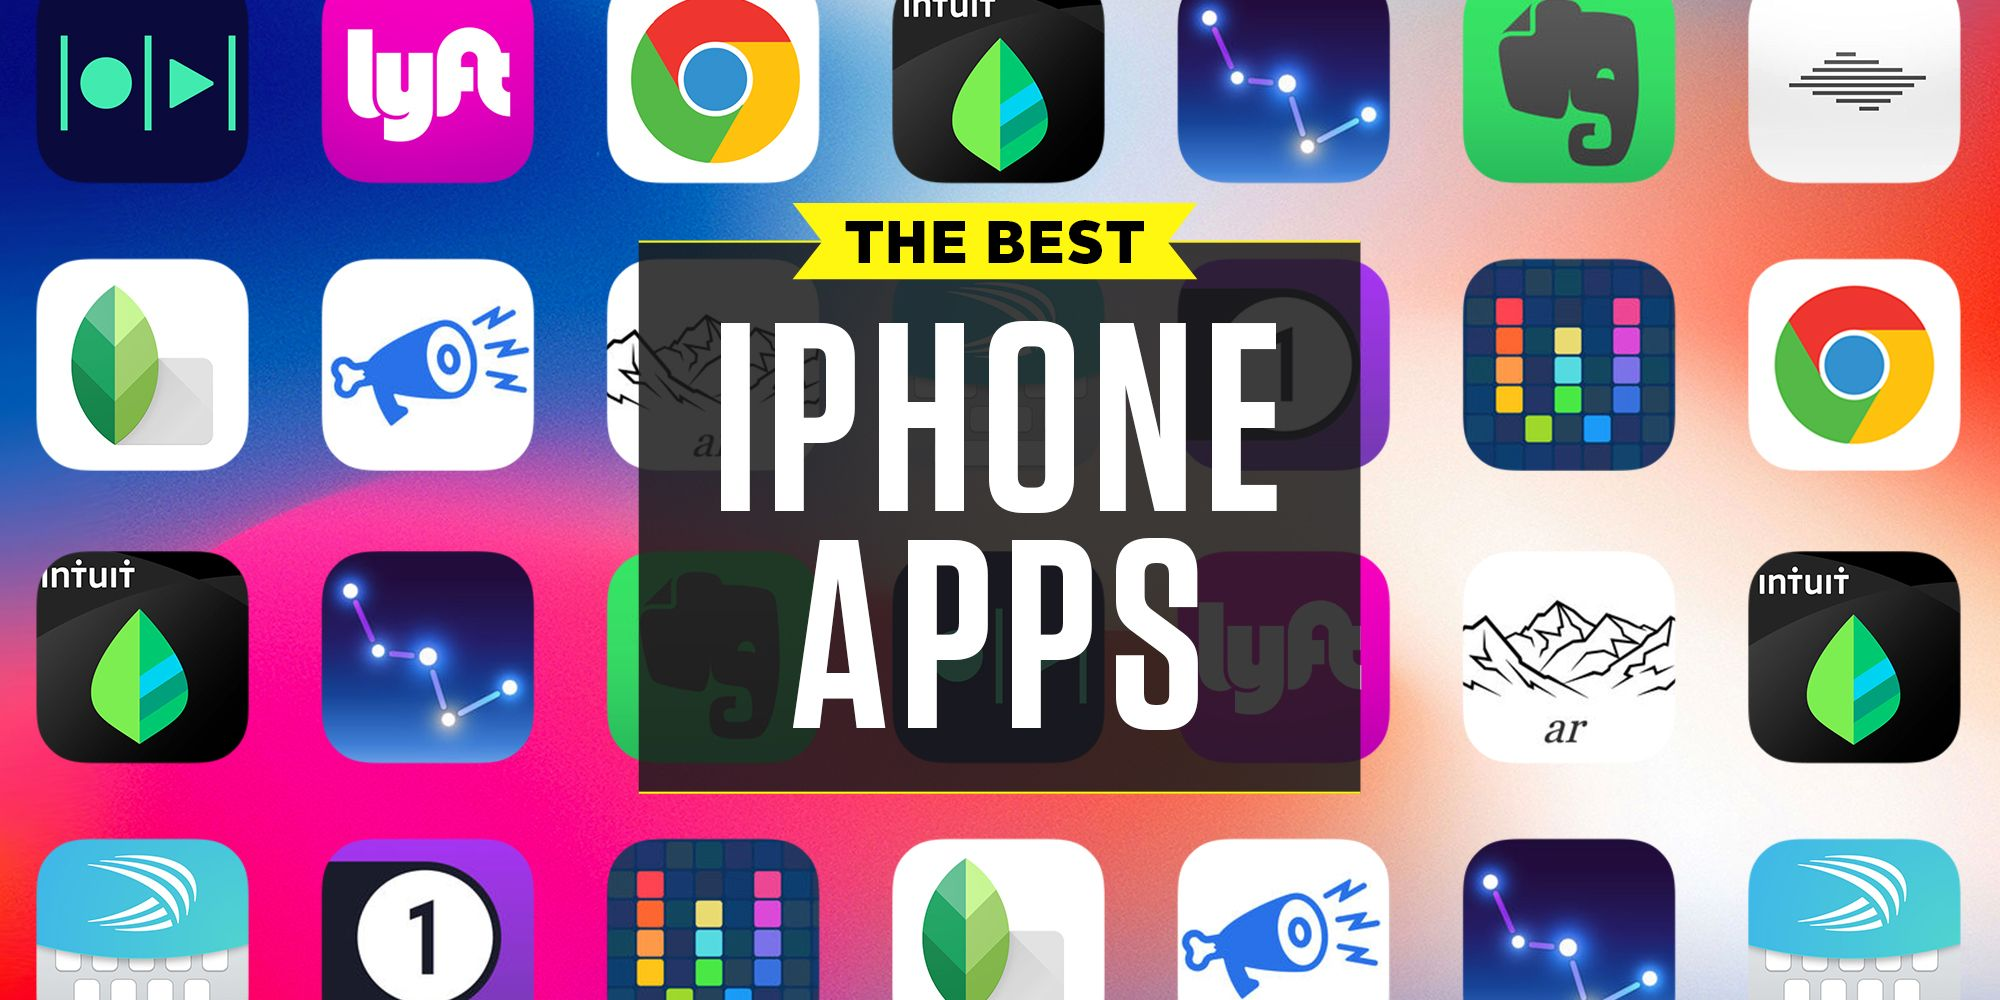 The 25 Best iPhone Apps To Download Now